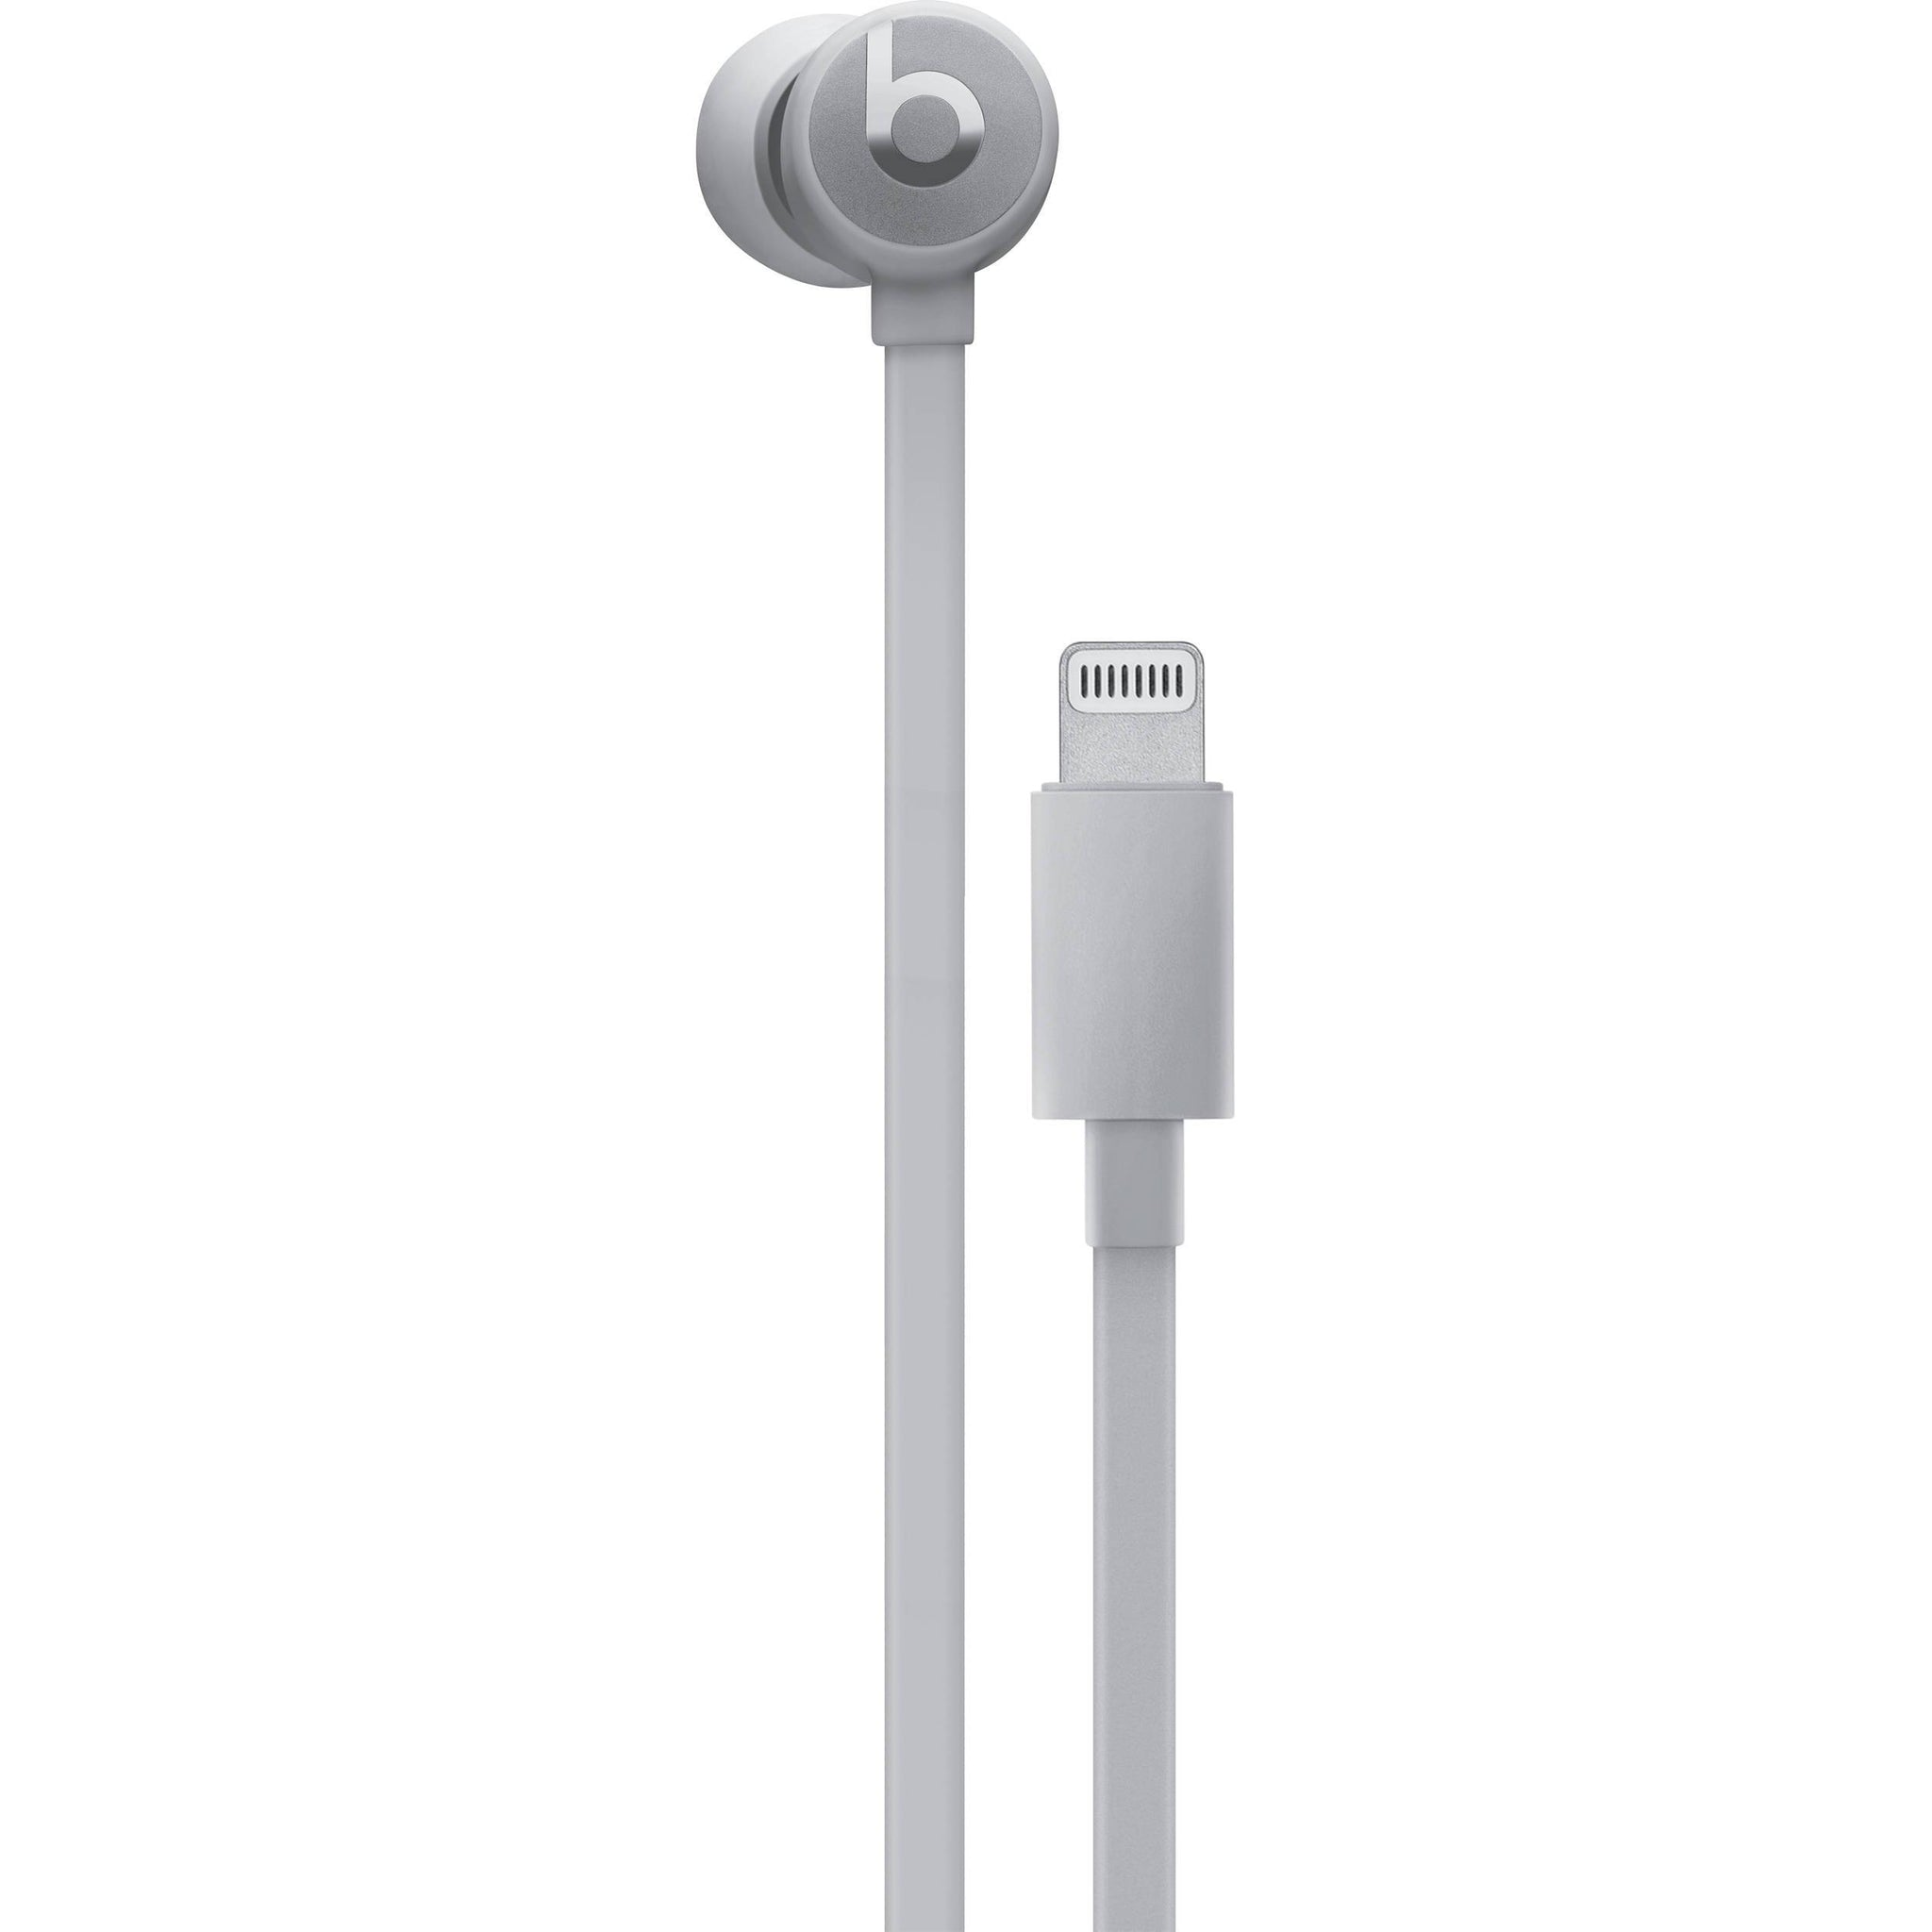 Beats by Dr. Dre urBeats3 In-Ear Headphones with Lightning Connector (Satin Silver)